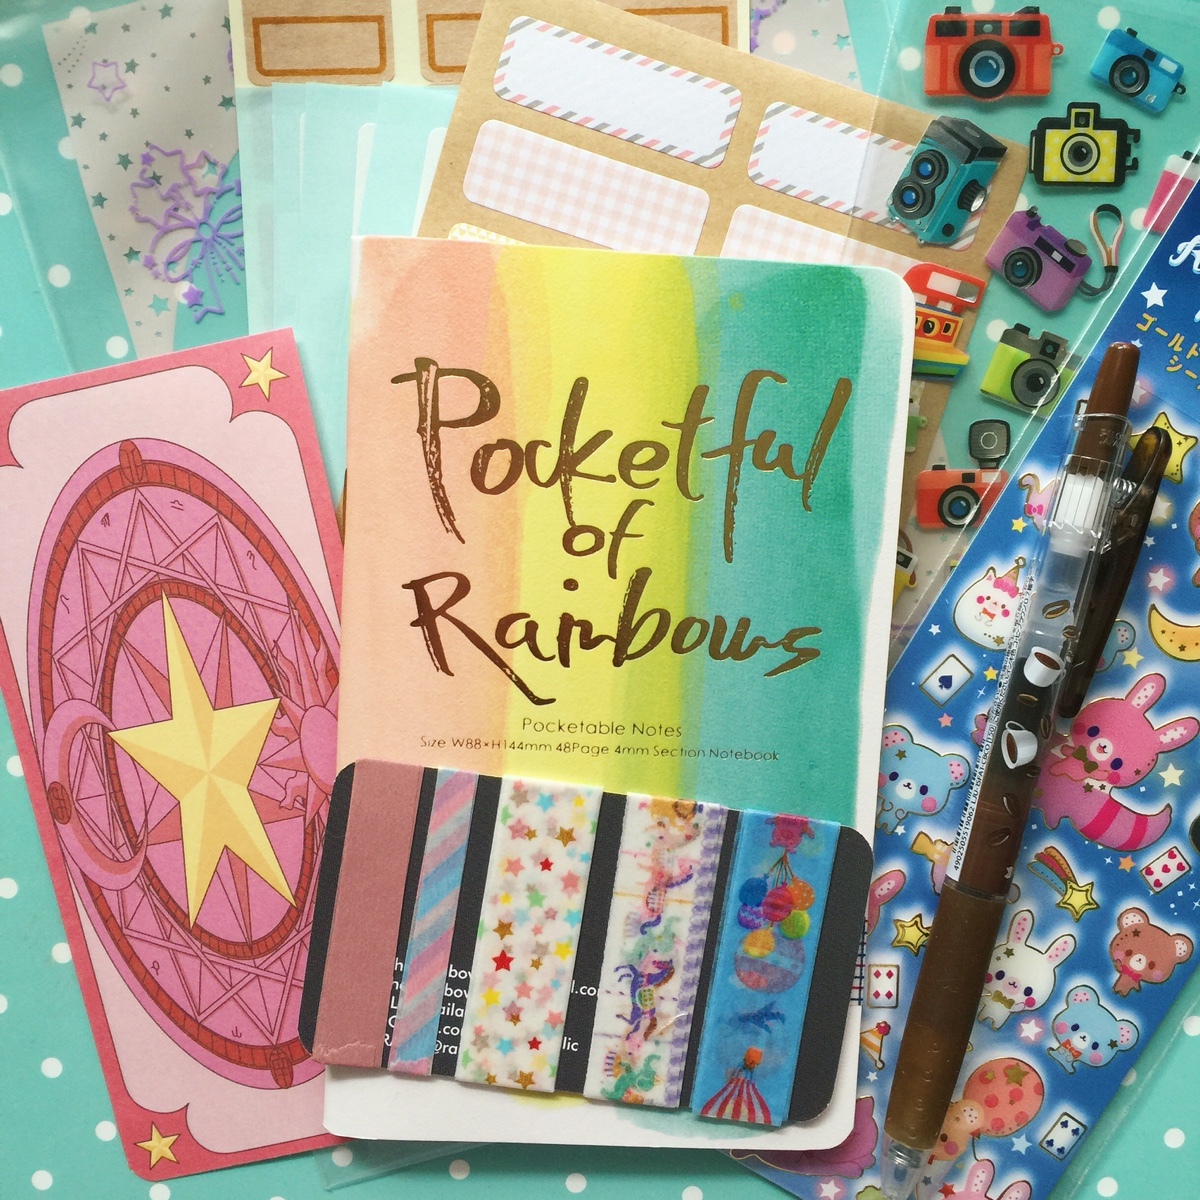 kawaii-travel-diary-kit-rainbowholic-shop.jpg